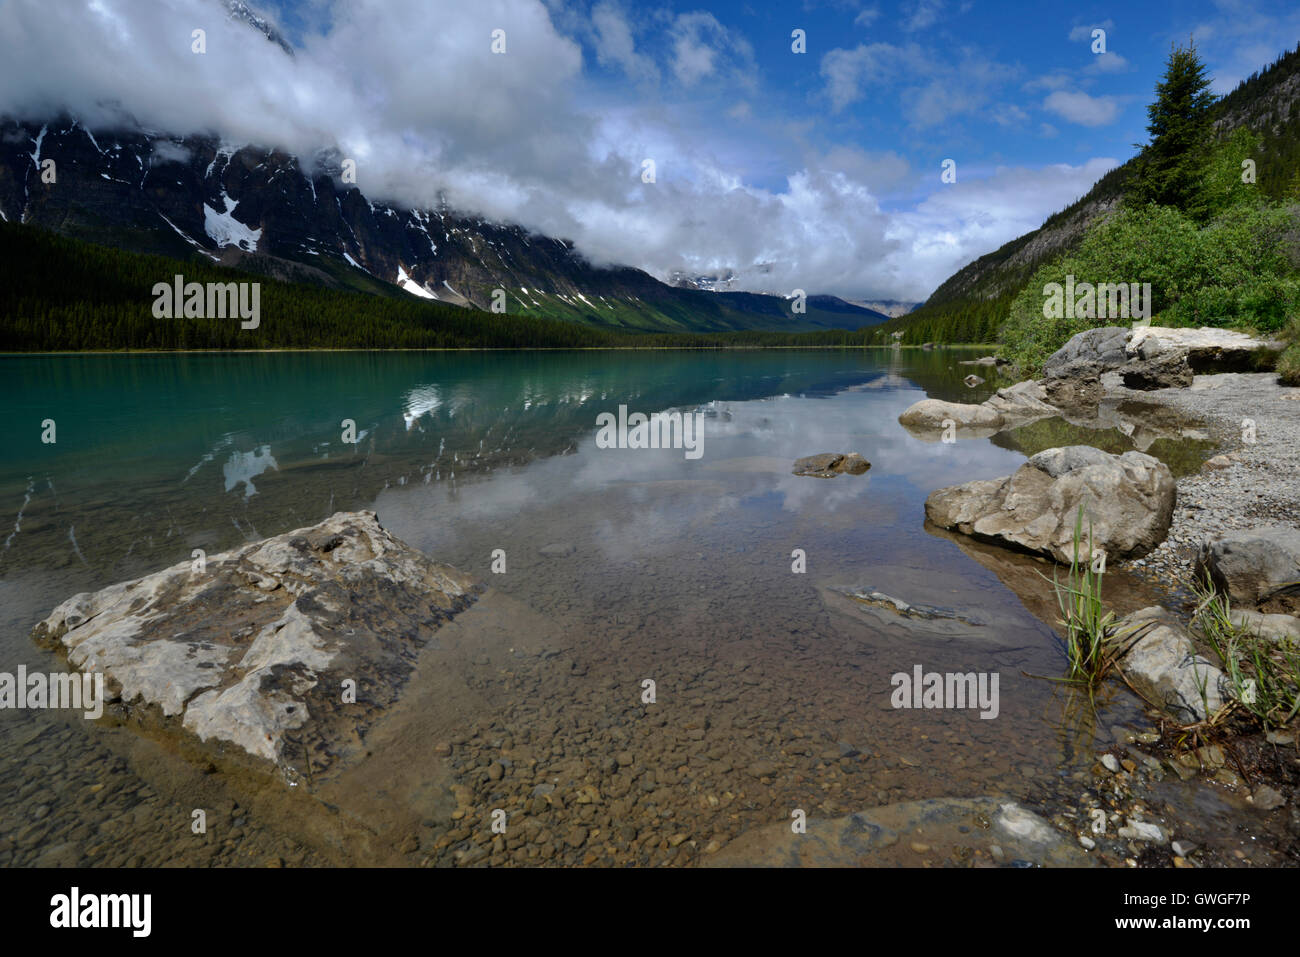 Waterfowl Lake and Mount Chephren, Banff National Park, Canada - Stock Image